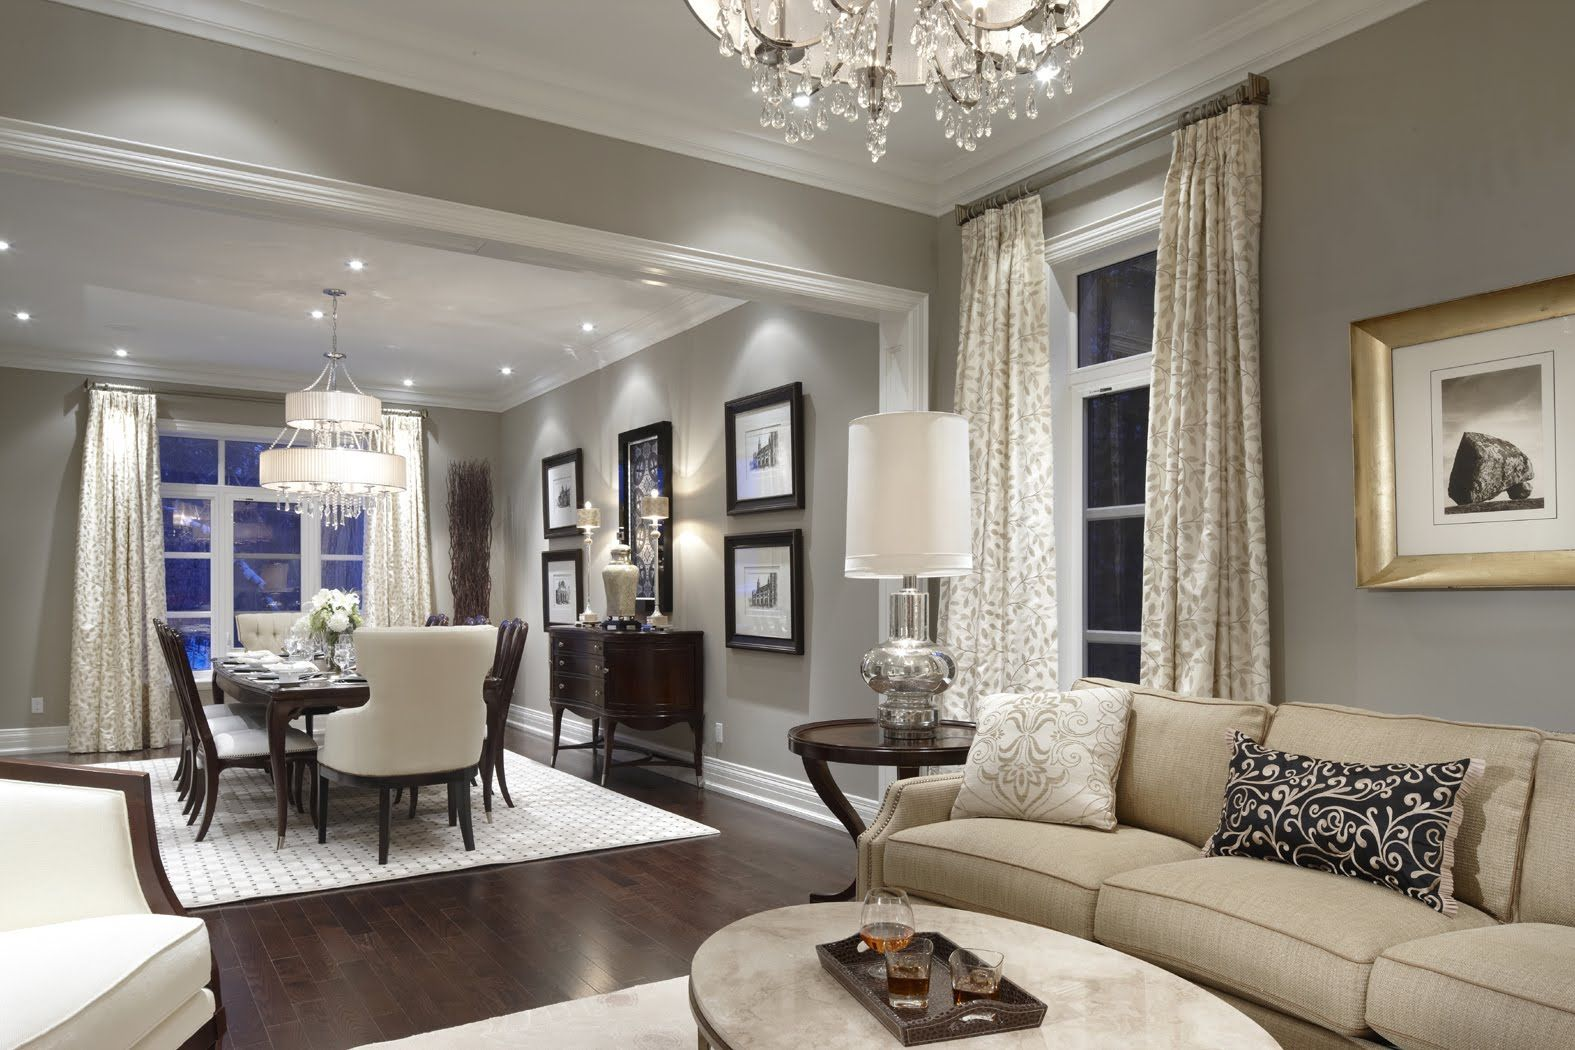 Benjamin moore colors for your living room decor - Gray living room walls ...